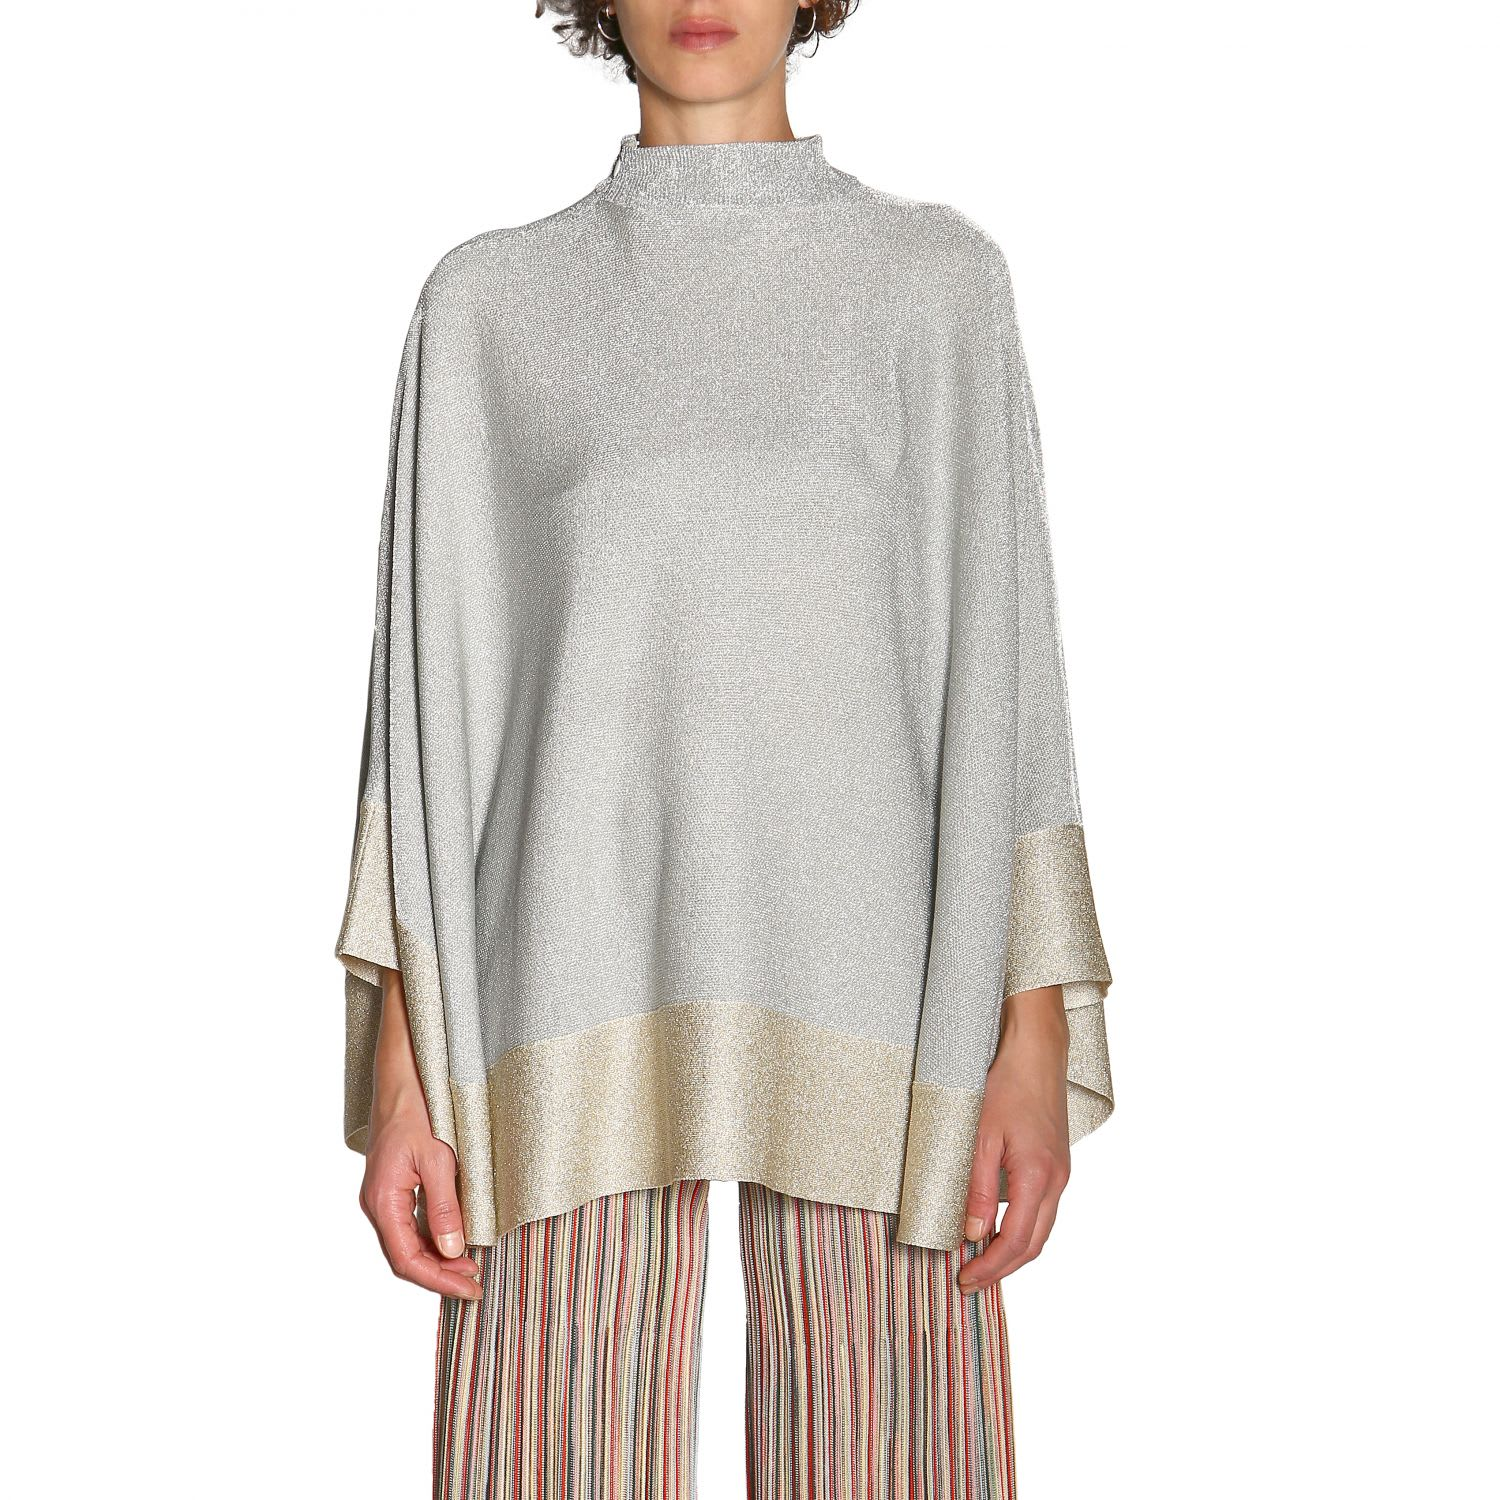 Photo of  Missoni Cape Cape Women Missoni- shop Missoni jackets online sales